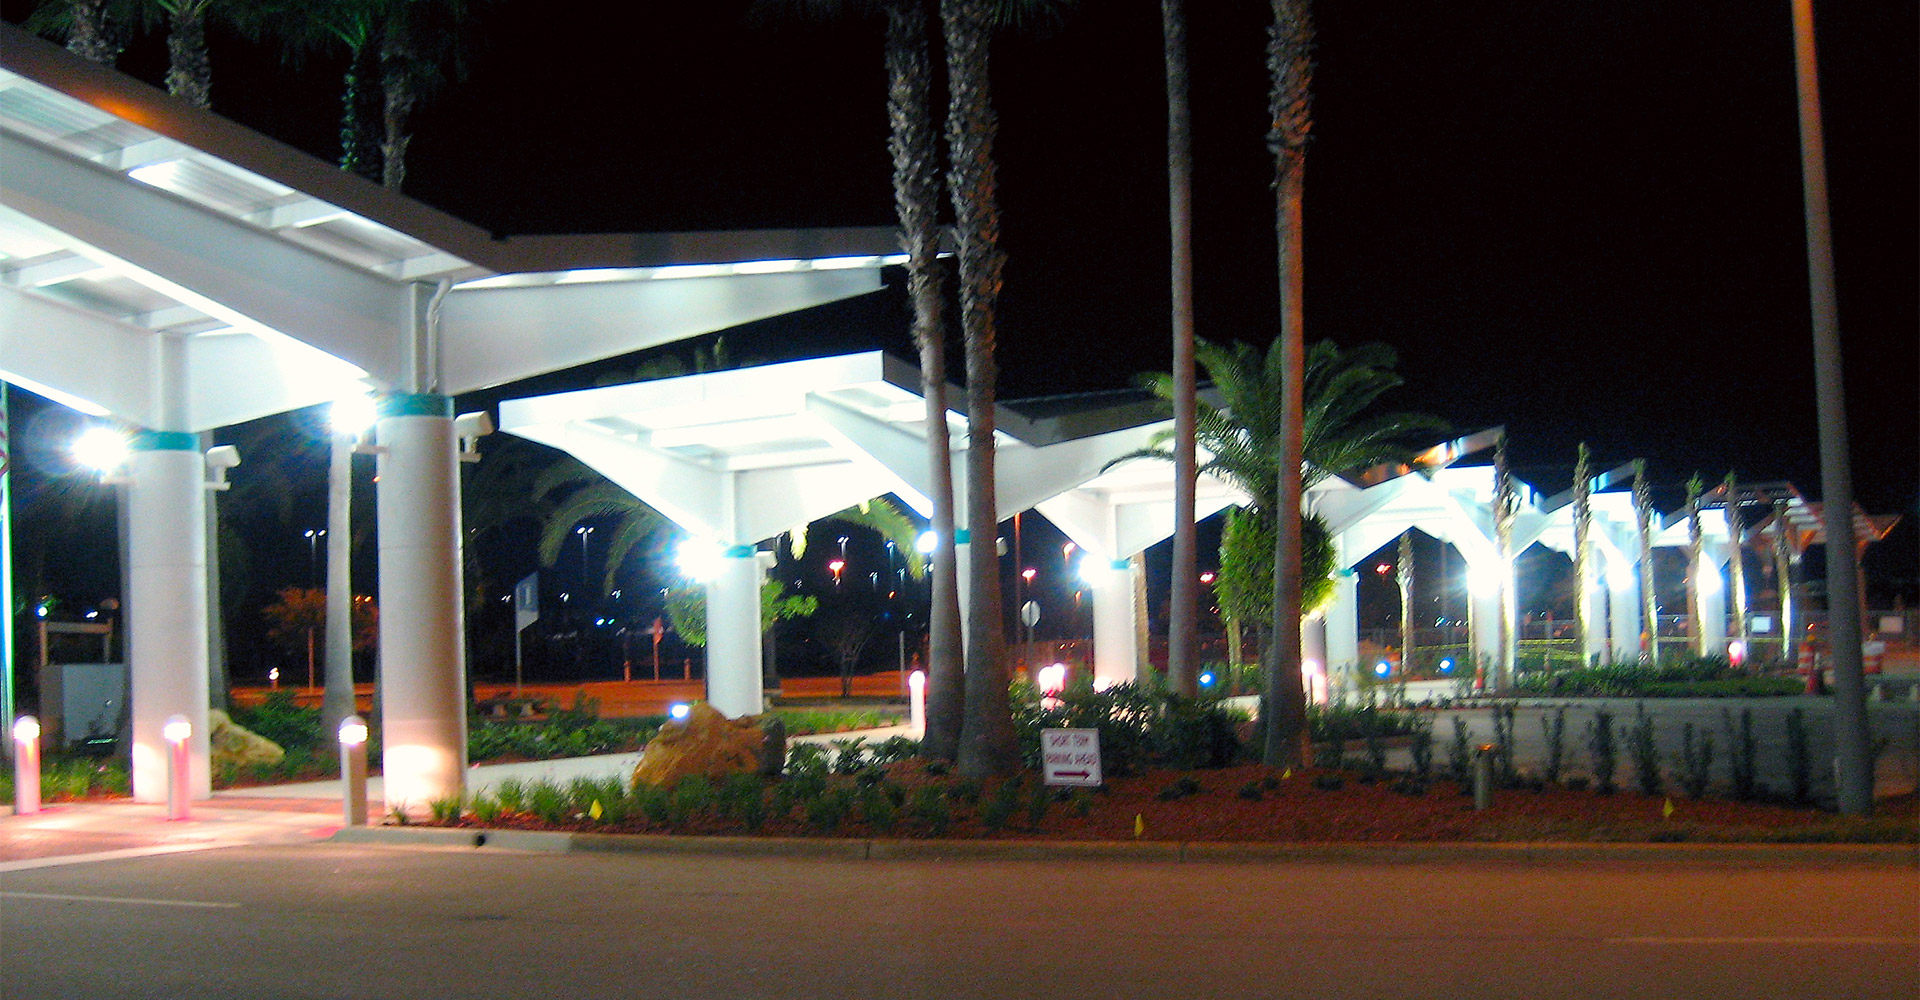 Exterior of Daytona Beach International Airport.